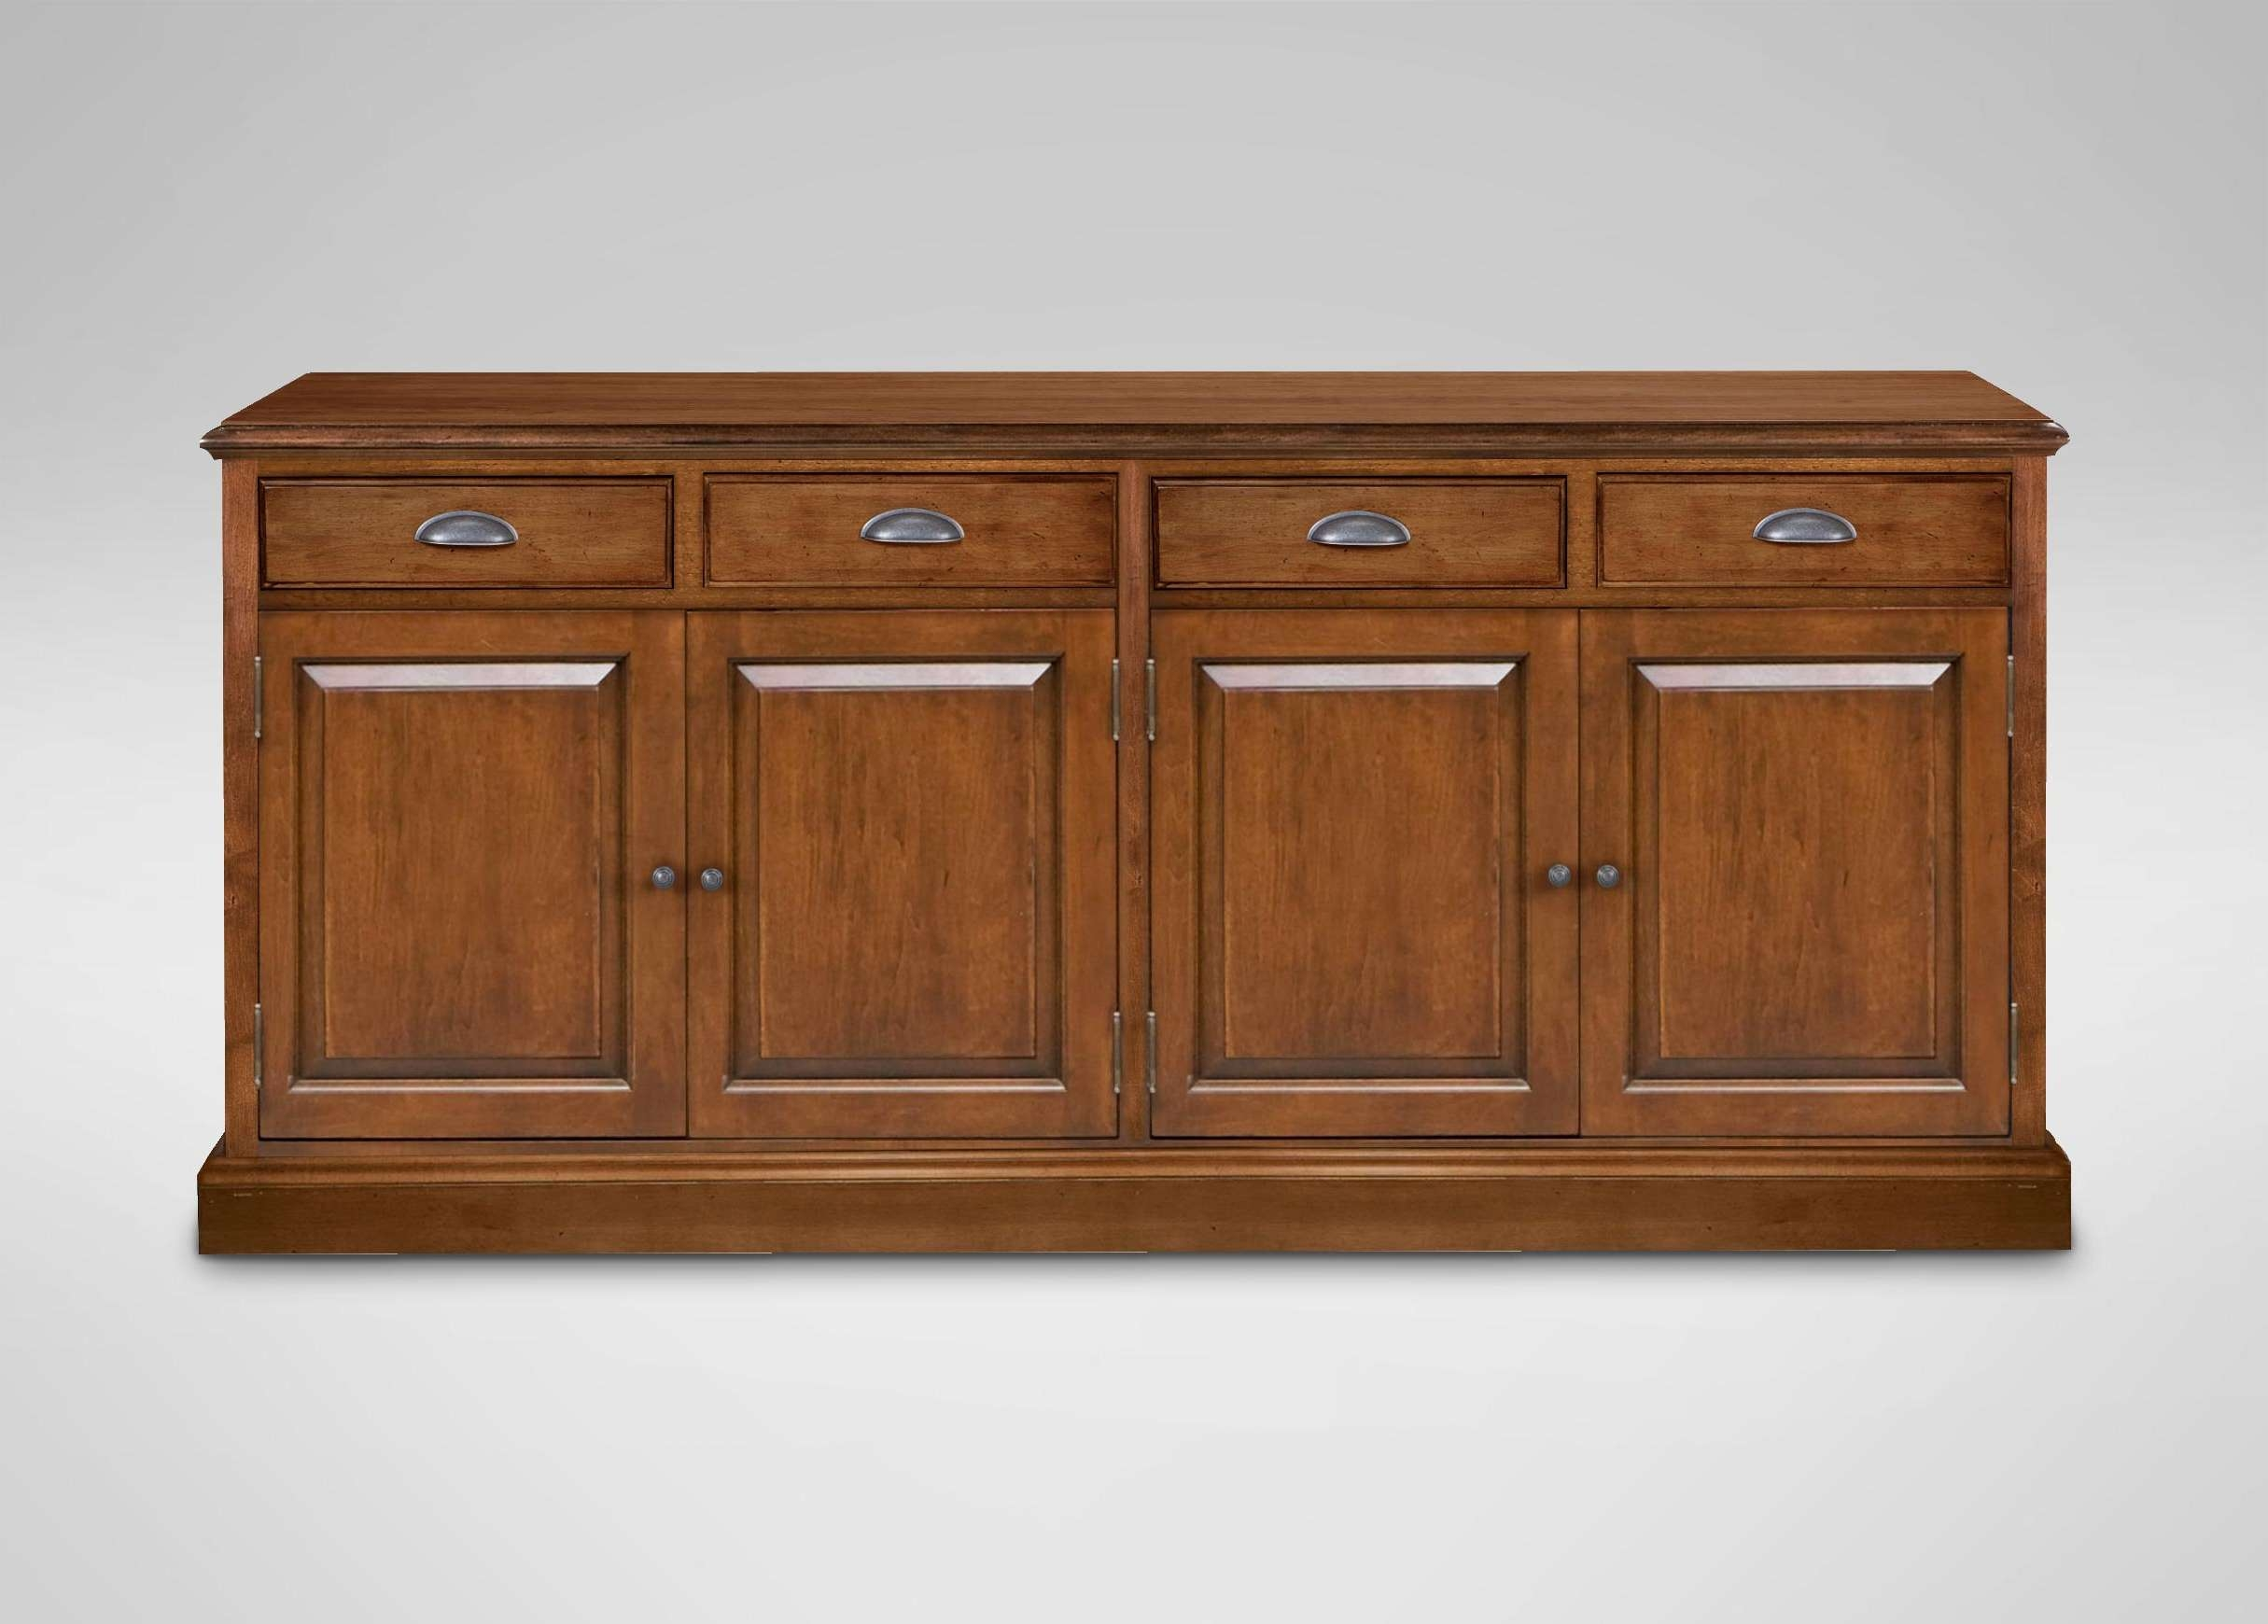 Shop Buffet Storage, Sideboards & Servers | Ethan Allen In Black Sideboards Cabinets (View 12 of 20)